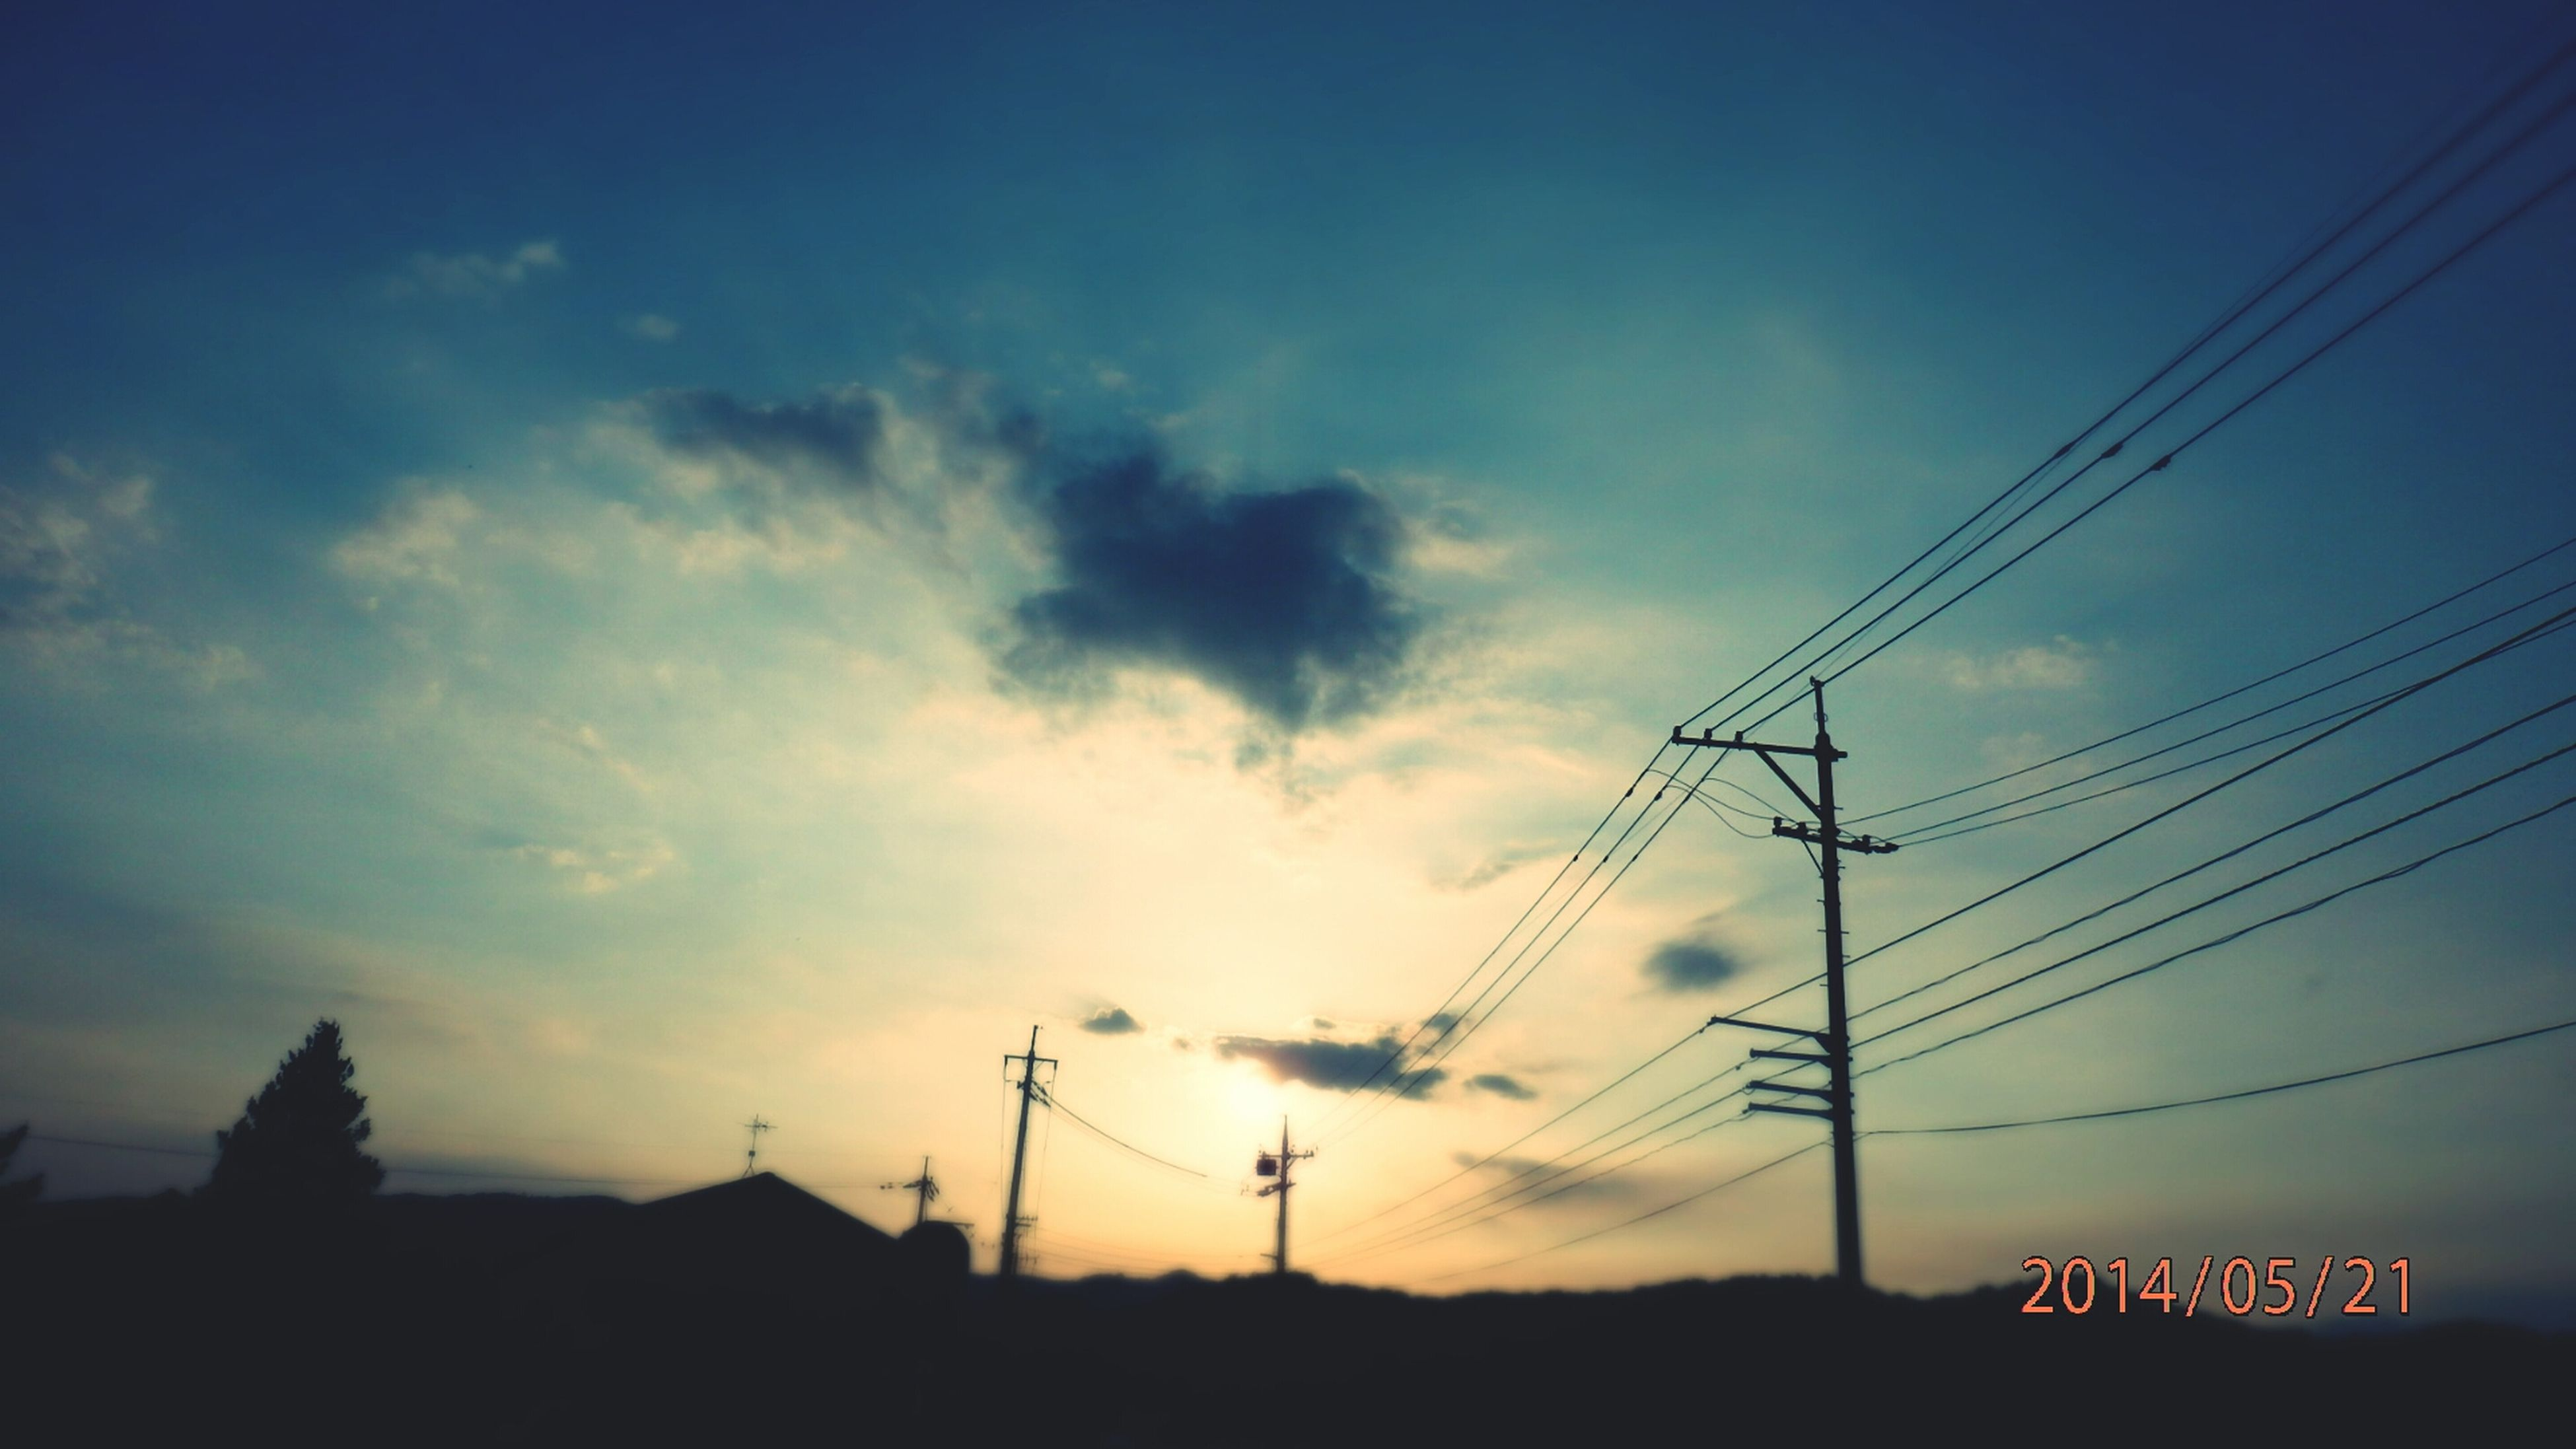 power line, electricity pylon, power supply, electricity, sky, cable, connection, low angle view, silhouette, fuel and power generation, technology, sunset, cloud - sky, power cable, built structure, dusk, cloud, building exterior, communication, outdoors